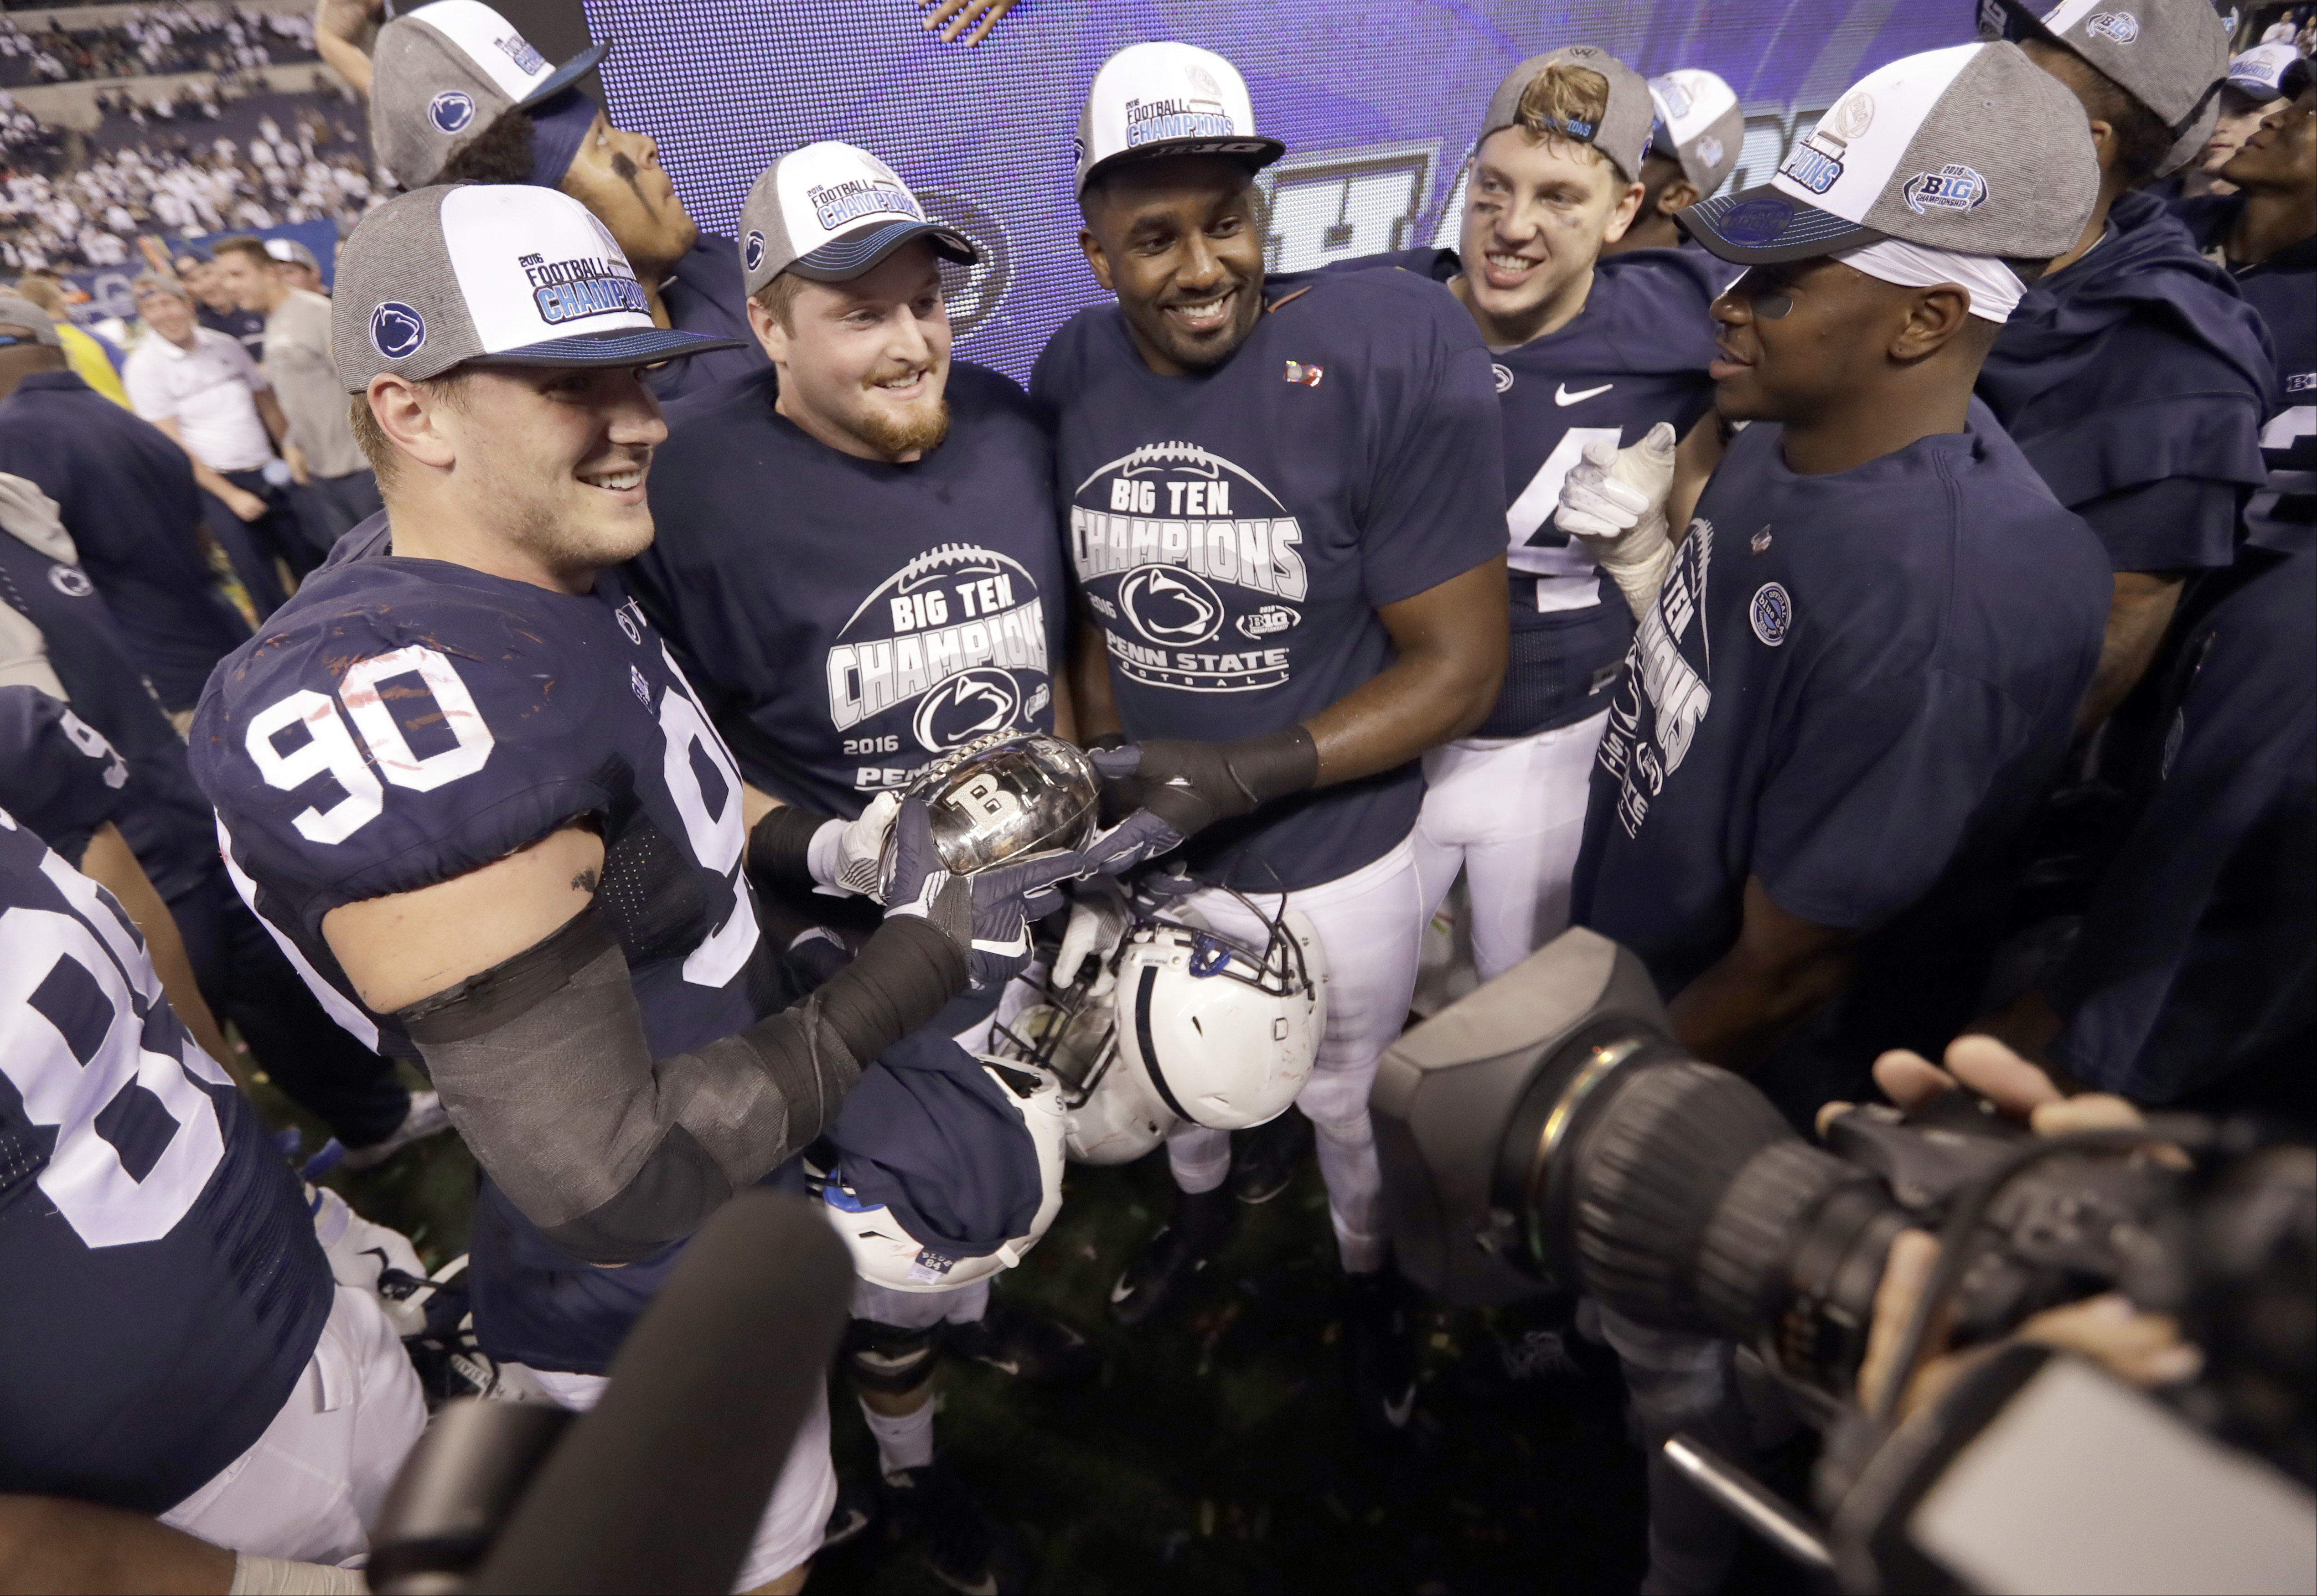 Penn State celebrates after defeating Wisconsin in the Big Ten championship NCAA college football game Sunday, Dec. 4, 2016, in Indianapolis. Penn State won 38-31. (AP Photo/Michael Conroy)